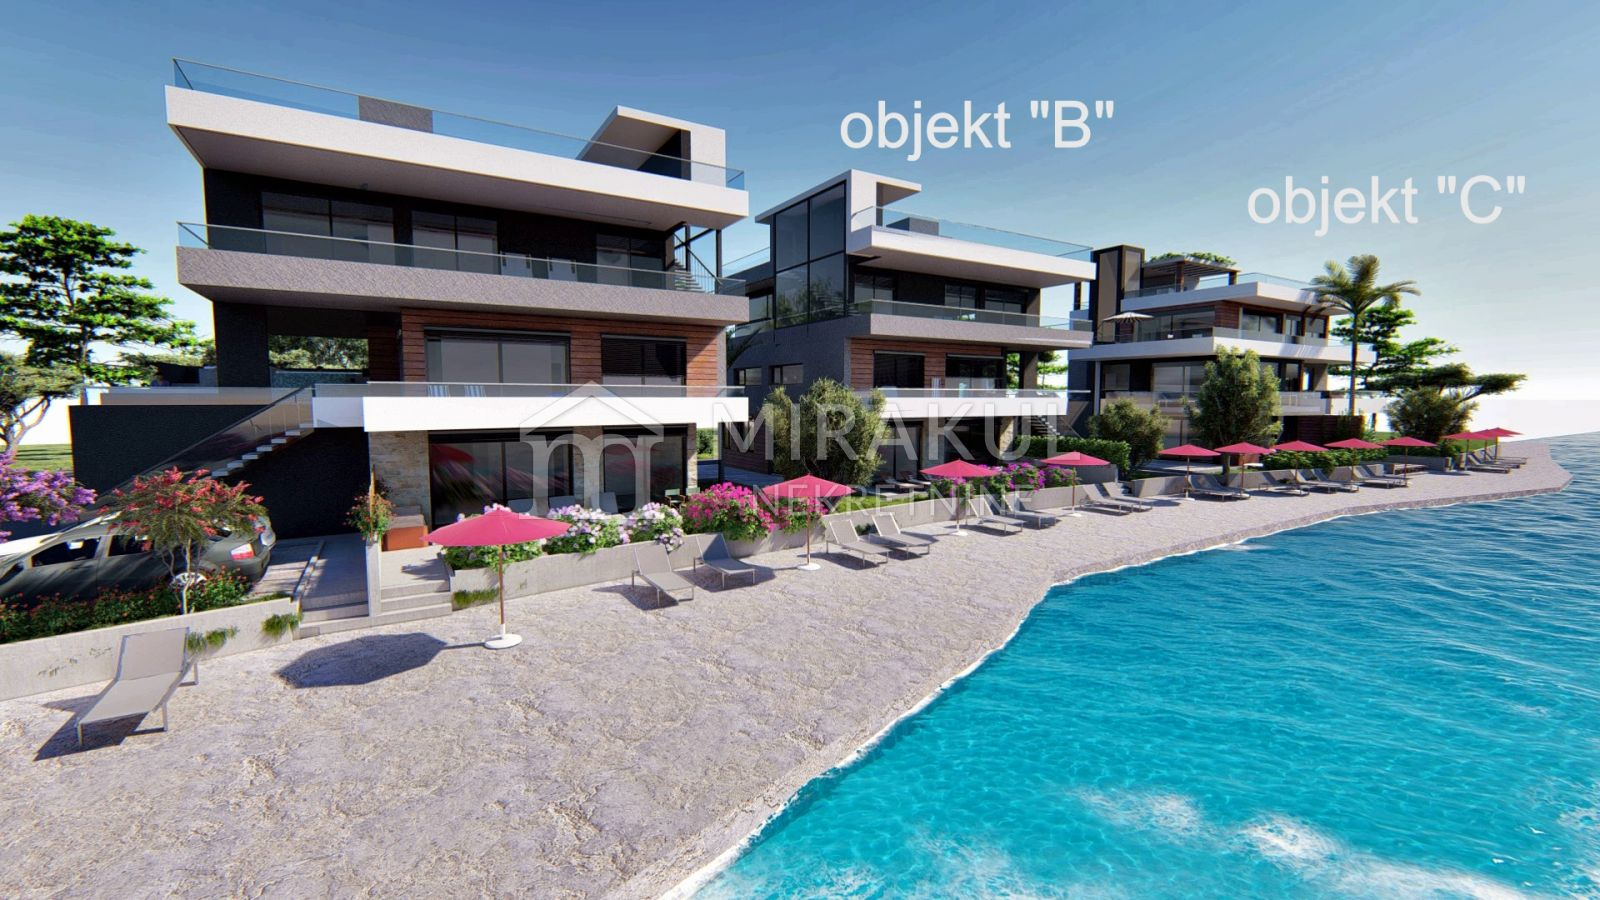 Properties Sukošan Croatia, flat, Mirakul Real Estate agency, ID - AS-637, Exclusive flats in the first row to the sea